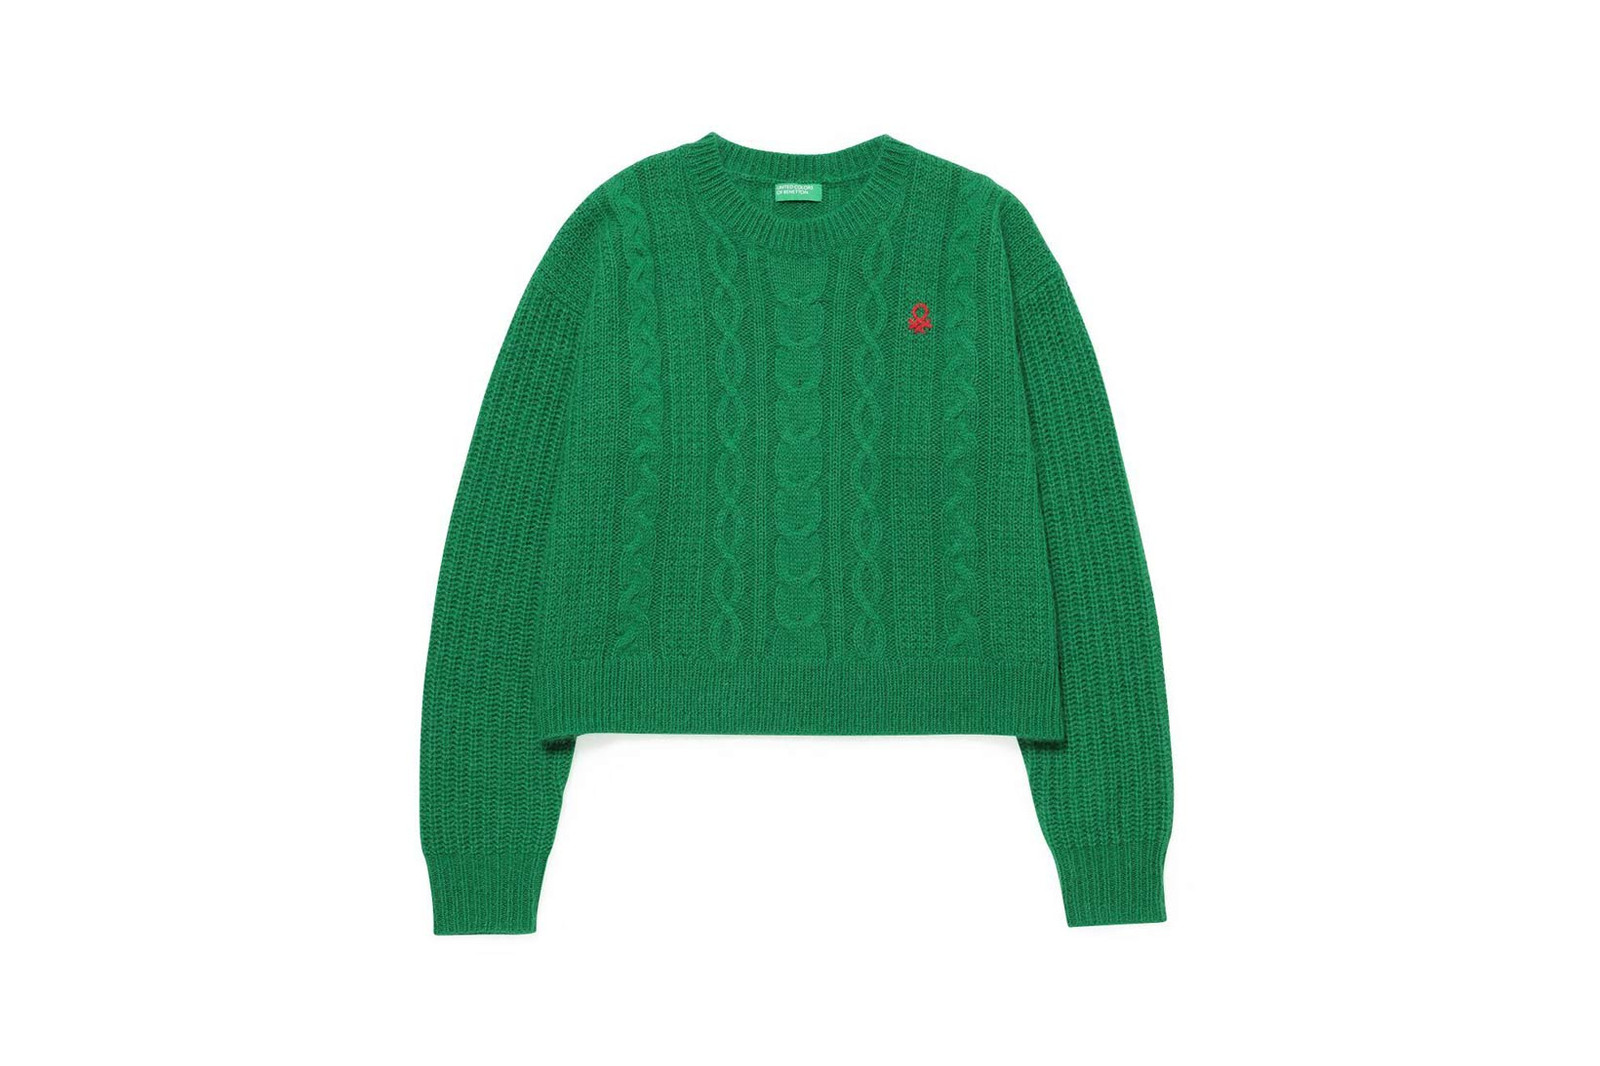 United Colors of Benetton ADAM ET ROPE Fall Winter 2017 Sweaters